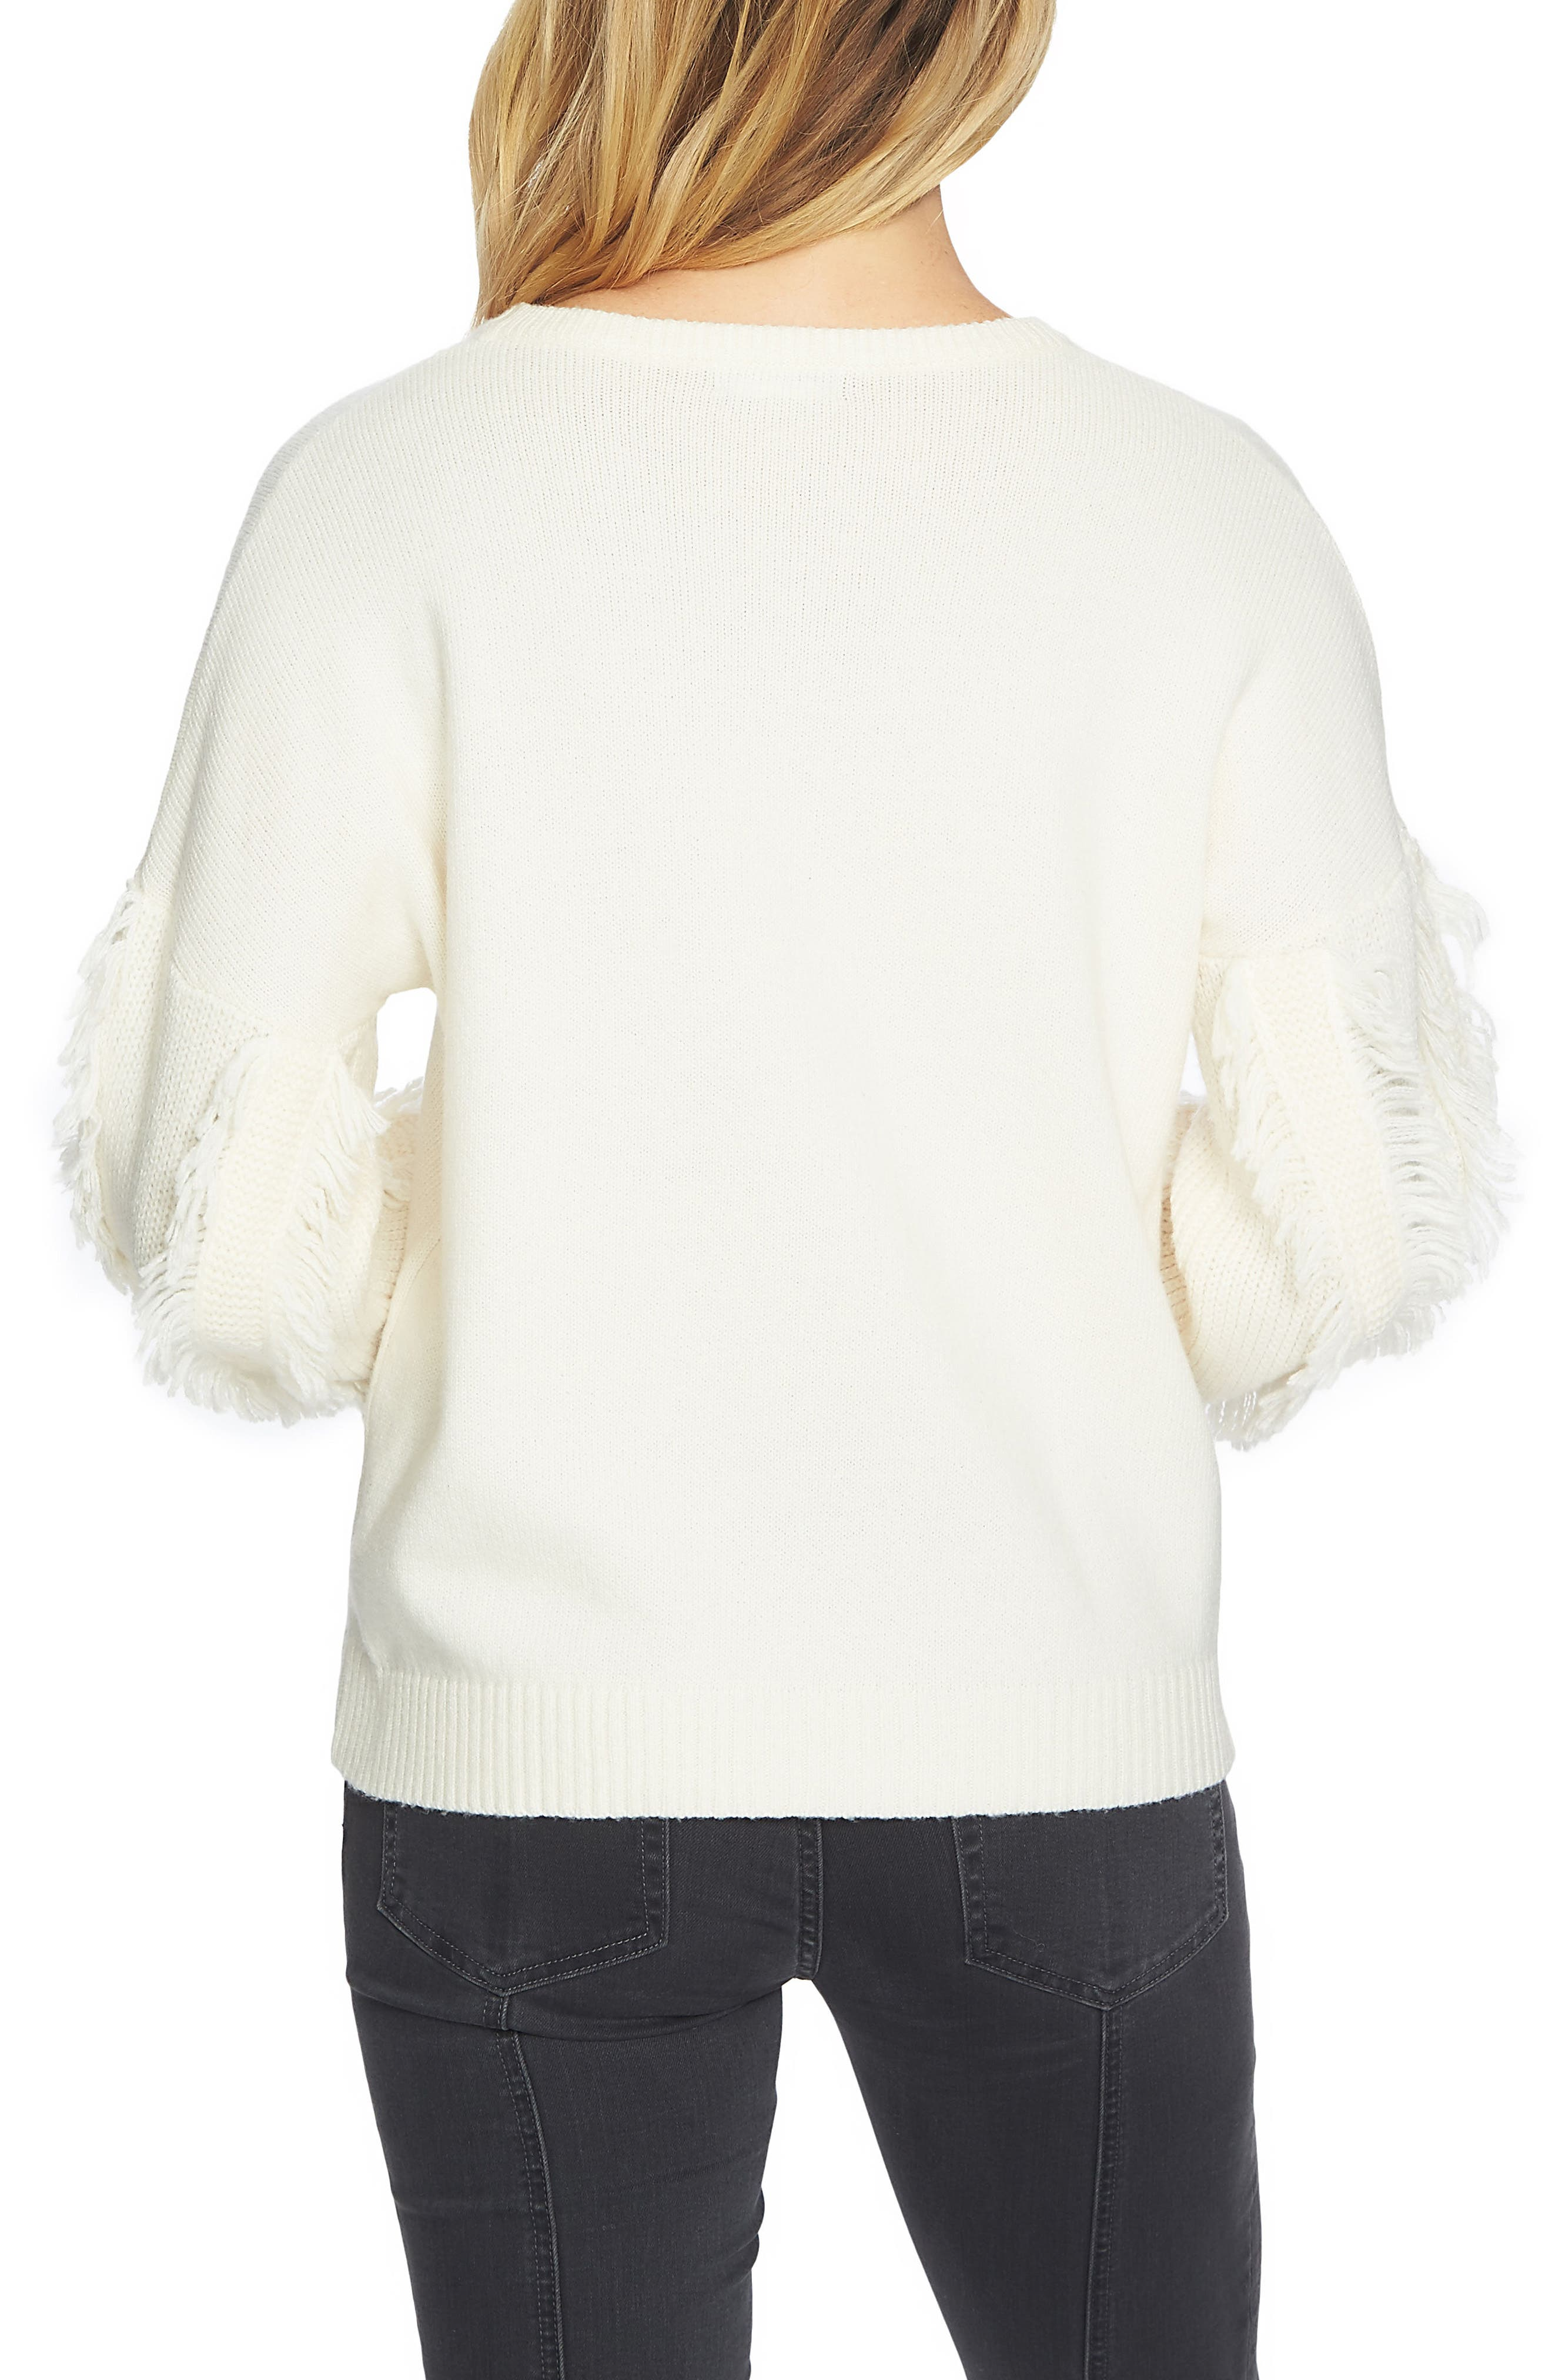 Fringe Sleeve Sweater,                             Alternate thumbnail 2, color,                             108-Antiq. White